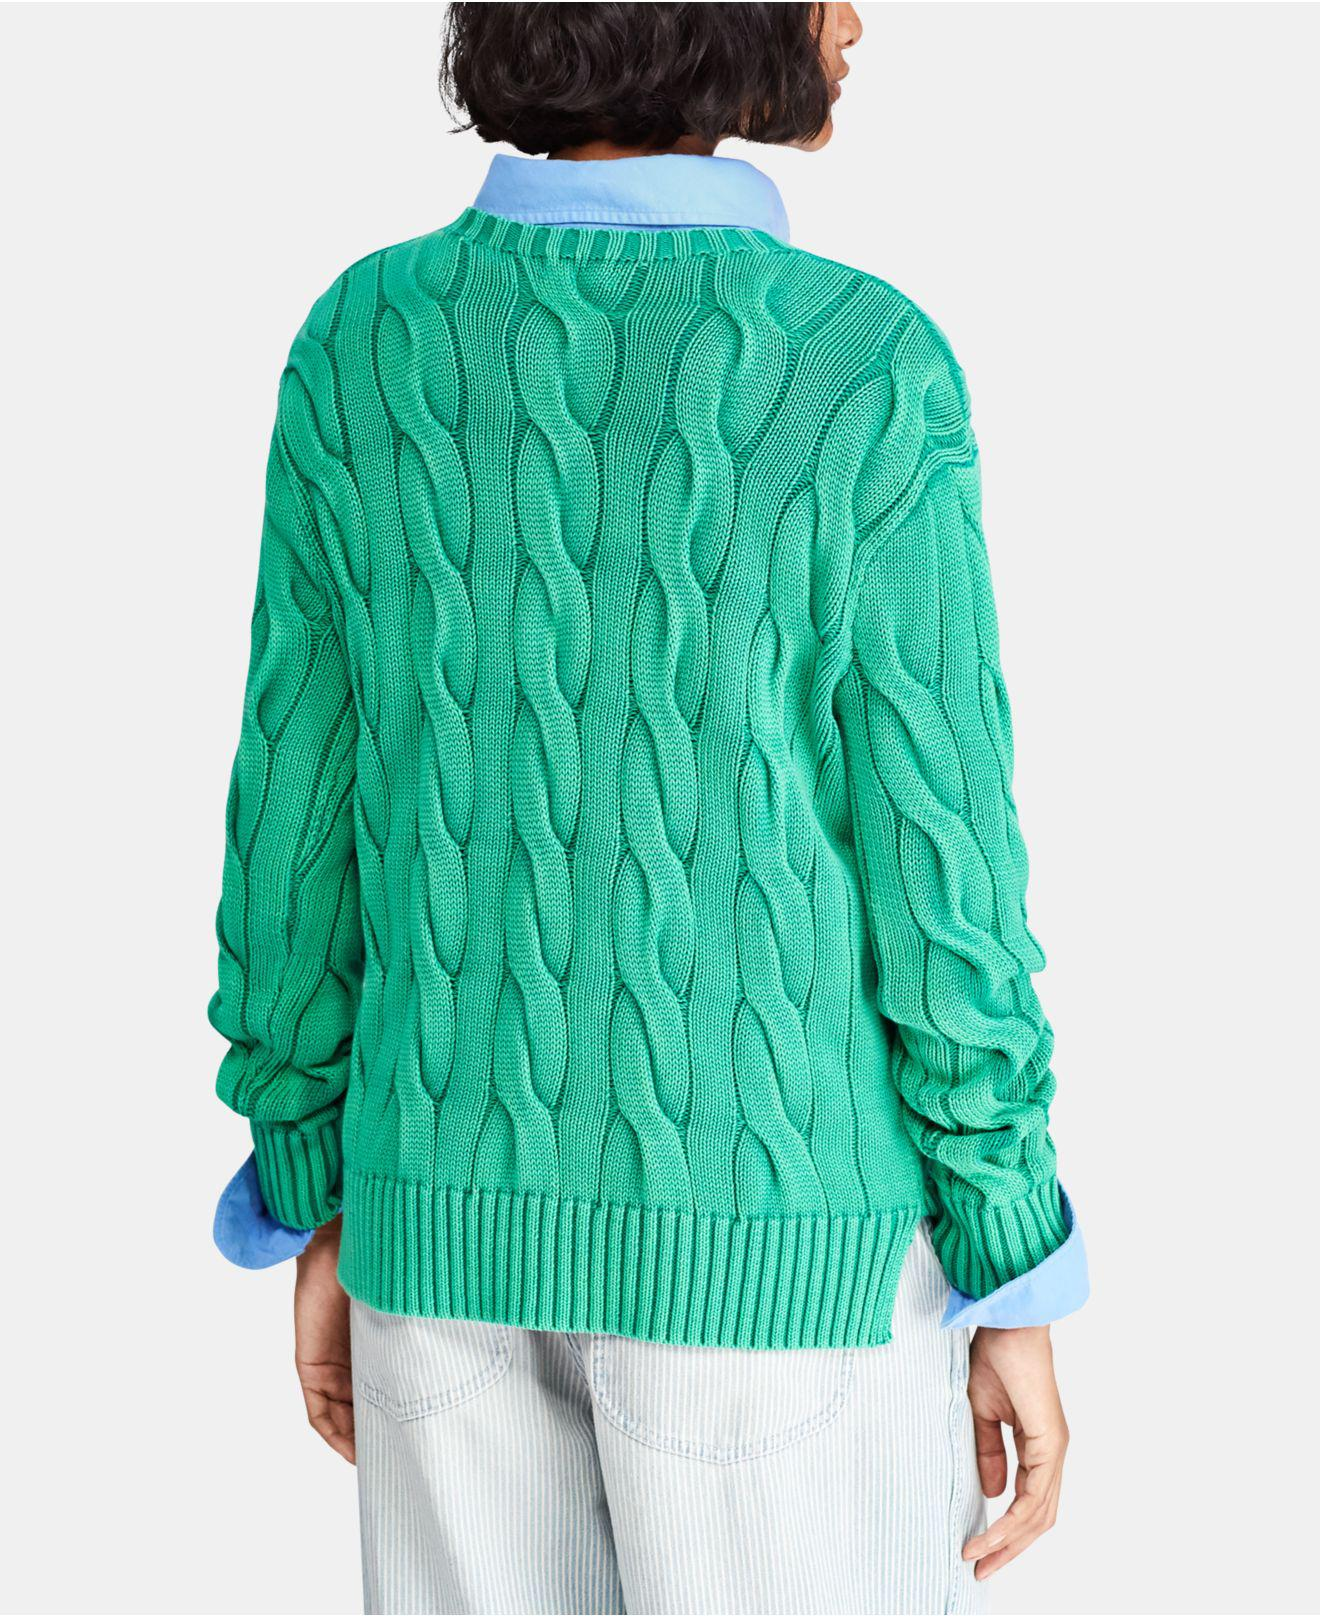 3a5b5ee885 Lyst - Polo Ralph Lauren Cable-knit Cotton Sweater in Green